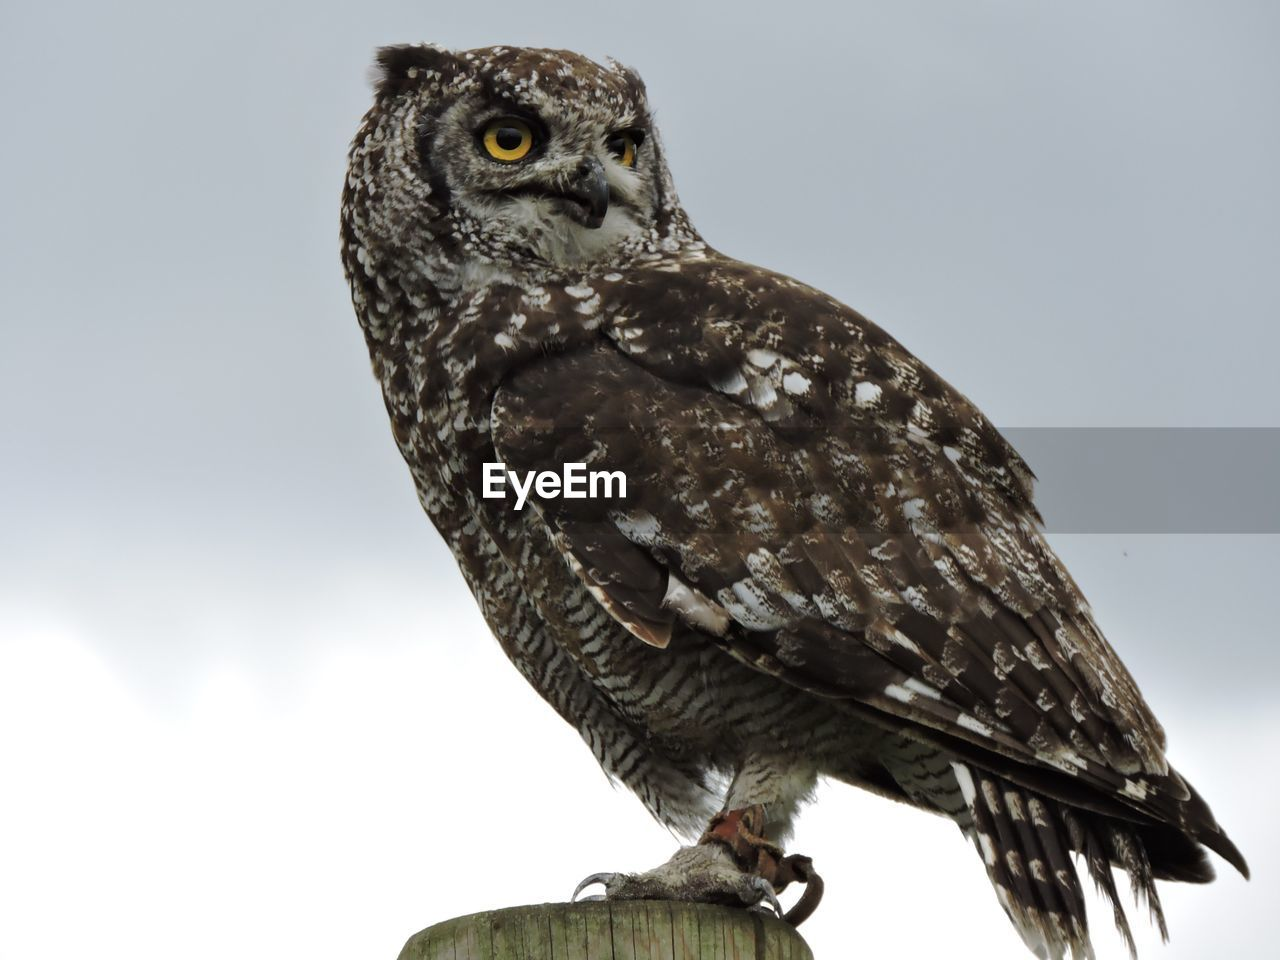 Low Angle View Of Eagle Owl Perching On Wood Against Sky